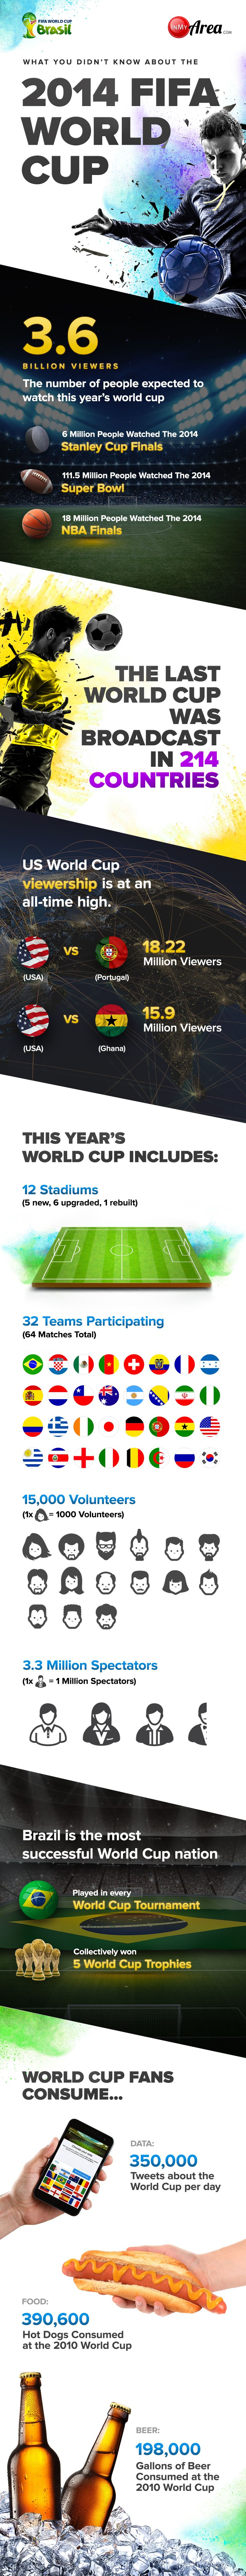 world cup trivia infographic